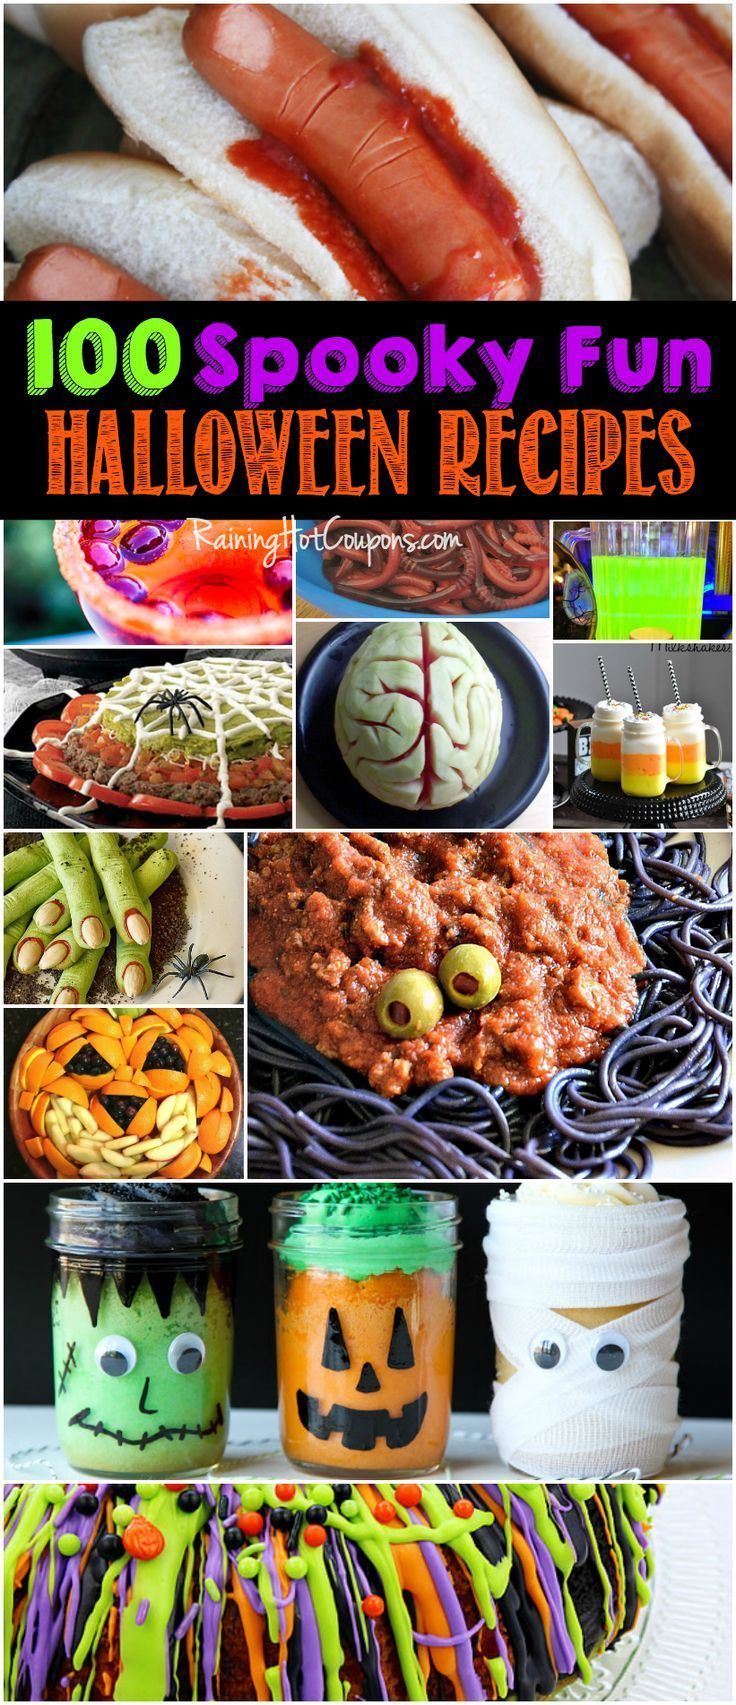 Spooky Treats Halloween Dishes to Make Your Skin Crawl